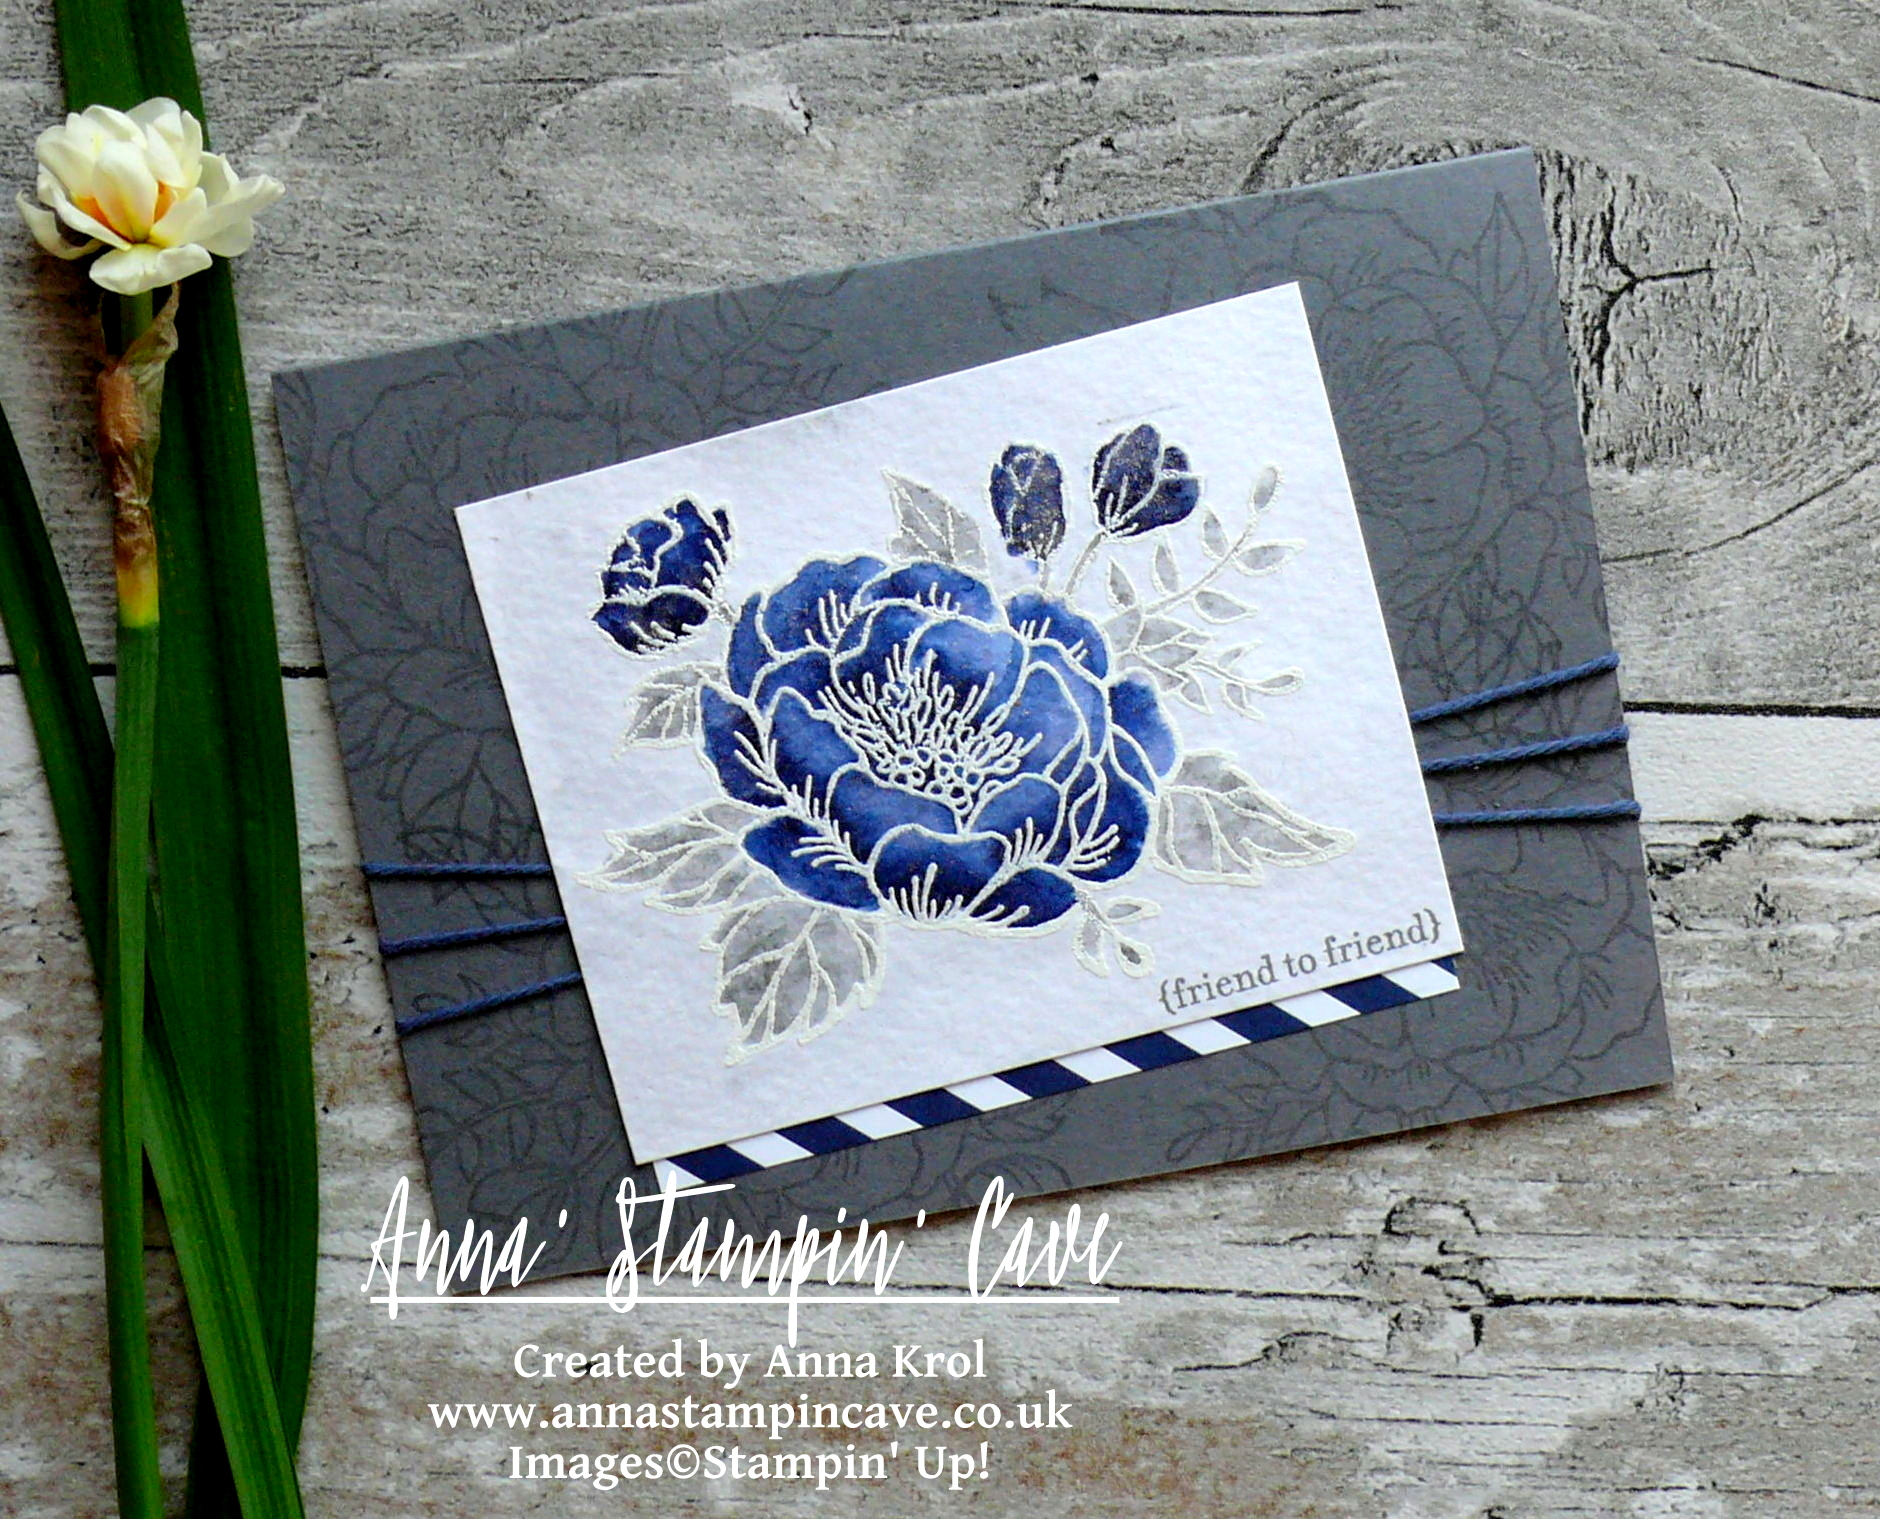 Anna' Stampin' Cave_Stampin' Up! Birthday Blooms Stamp Set_Watercolour Card_Basic Grey Night Of Navy